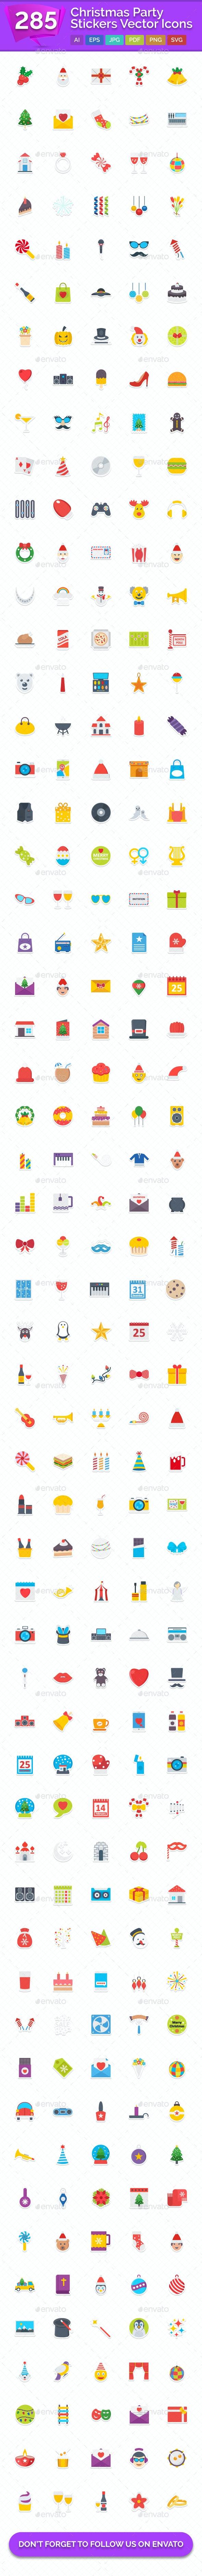 285 Christmas Party Vector Stickers Icons - Icons